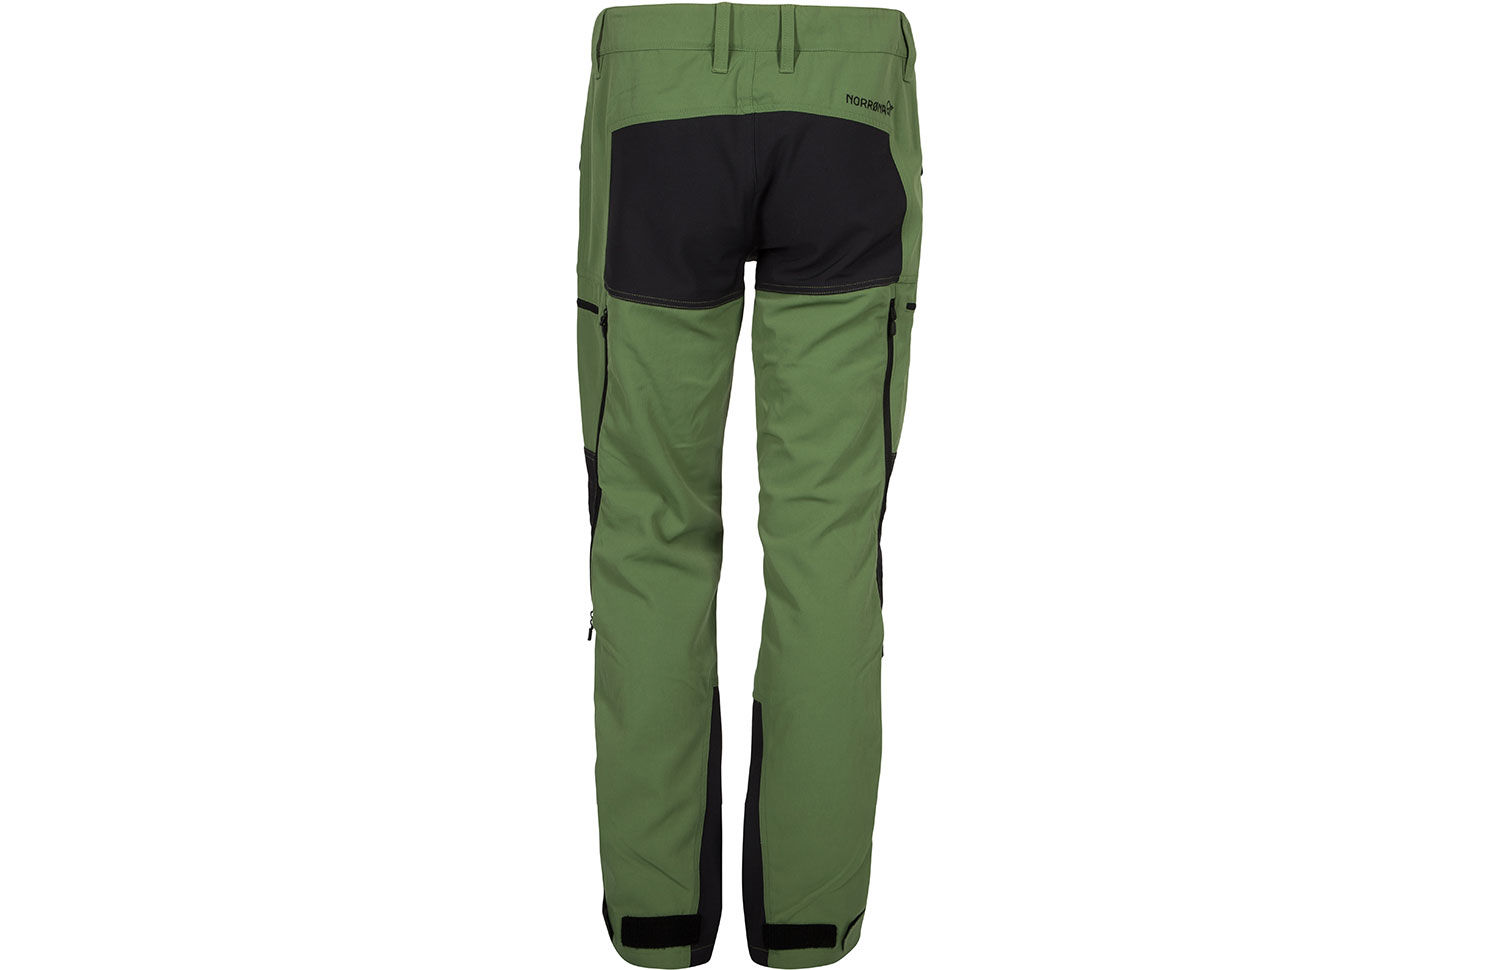 Norrona svalbard heavy duty Pants for women